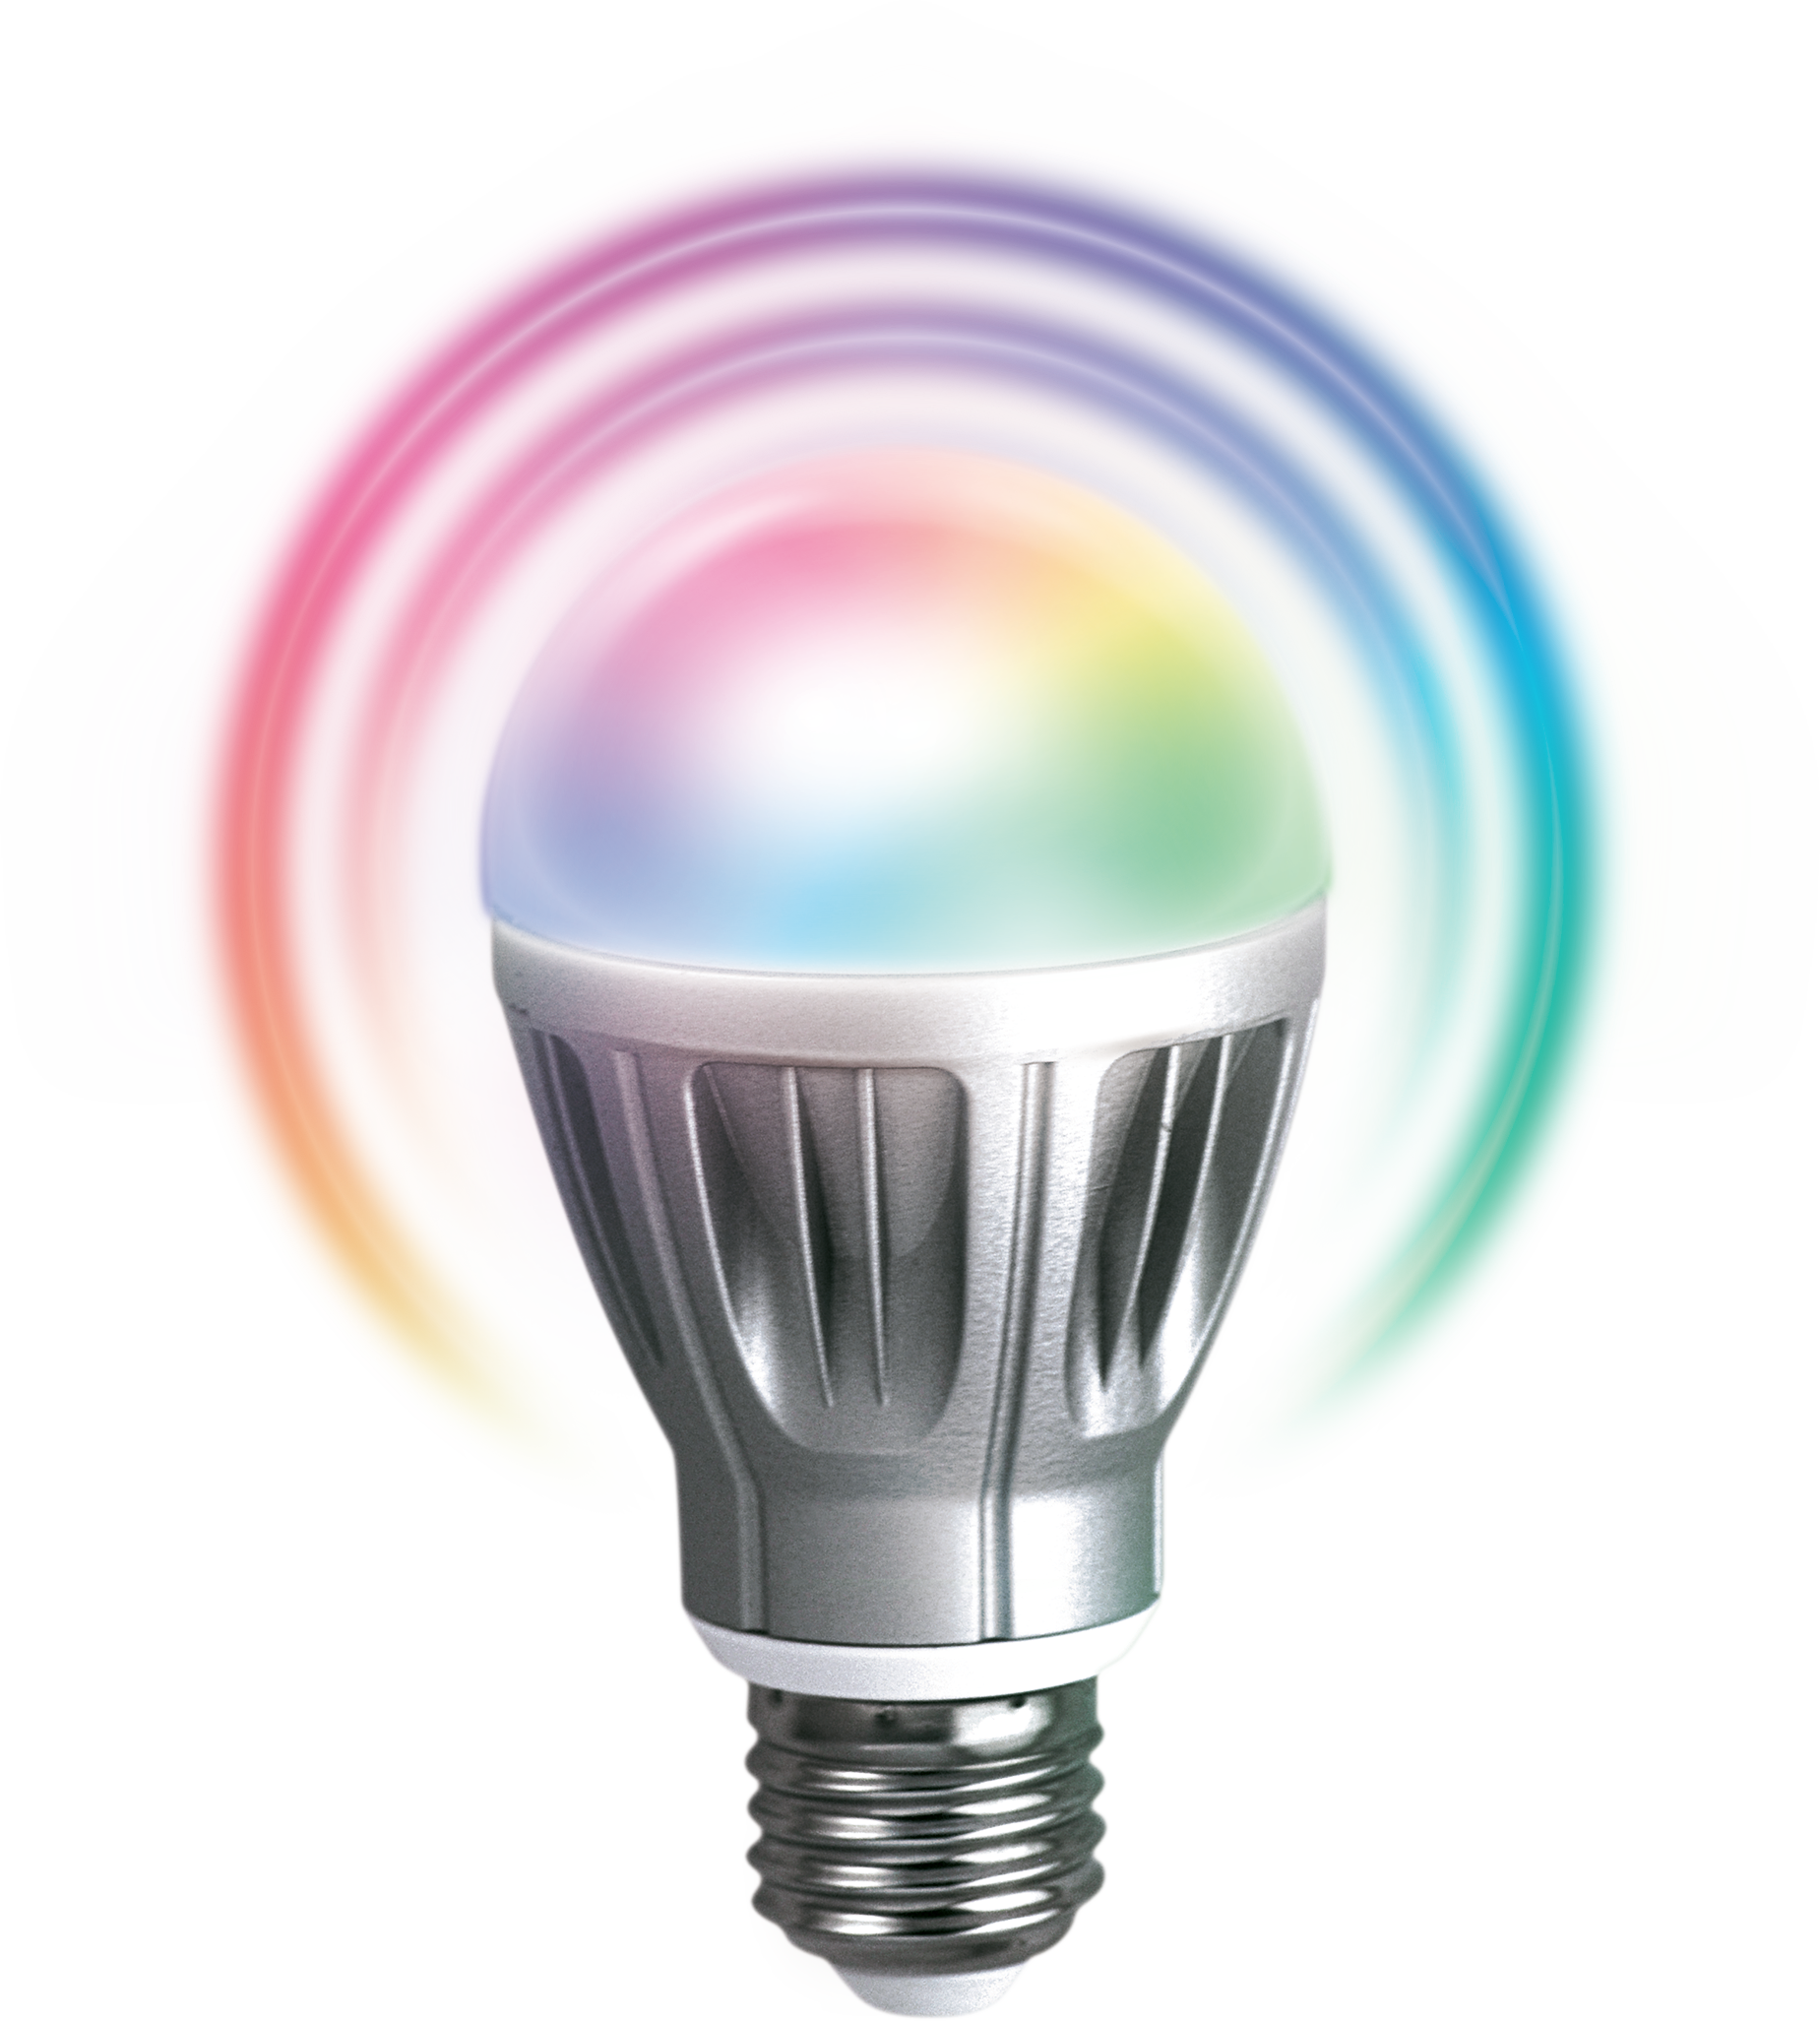 Zipato rgbw led z wave 6 7 watt bulb with 5 color channels compatible with most z wave home Bulbs led